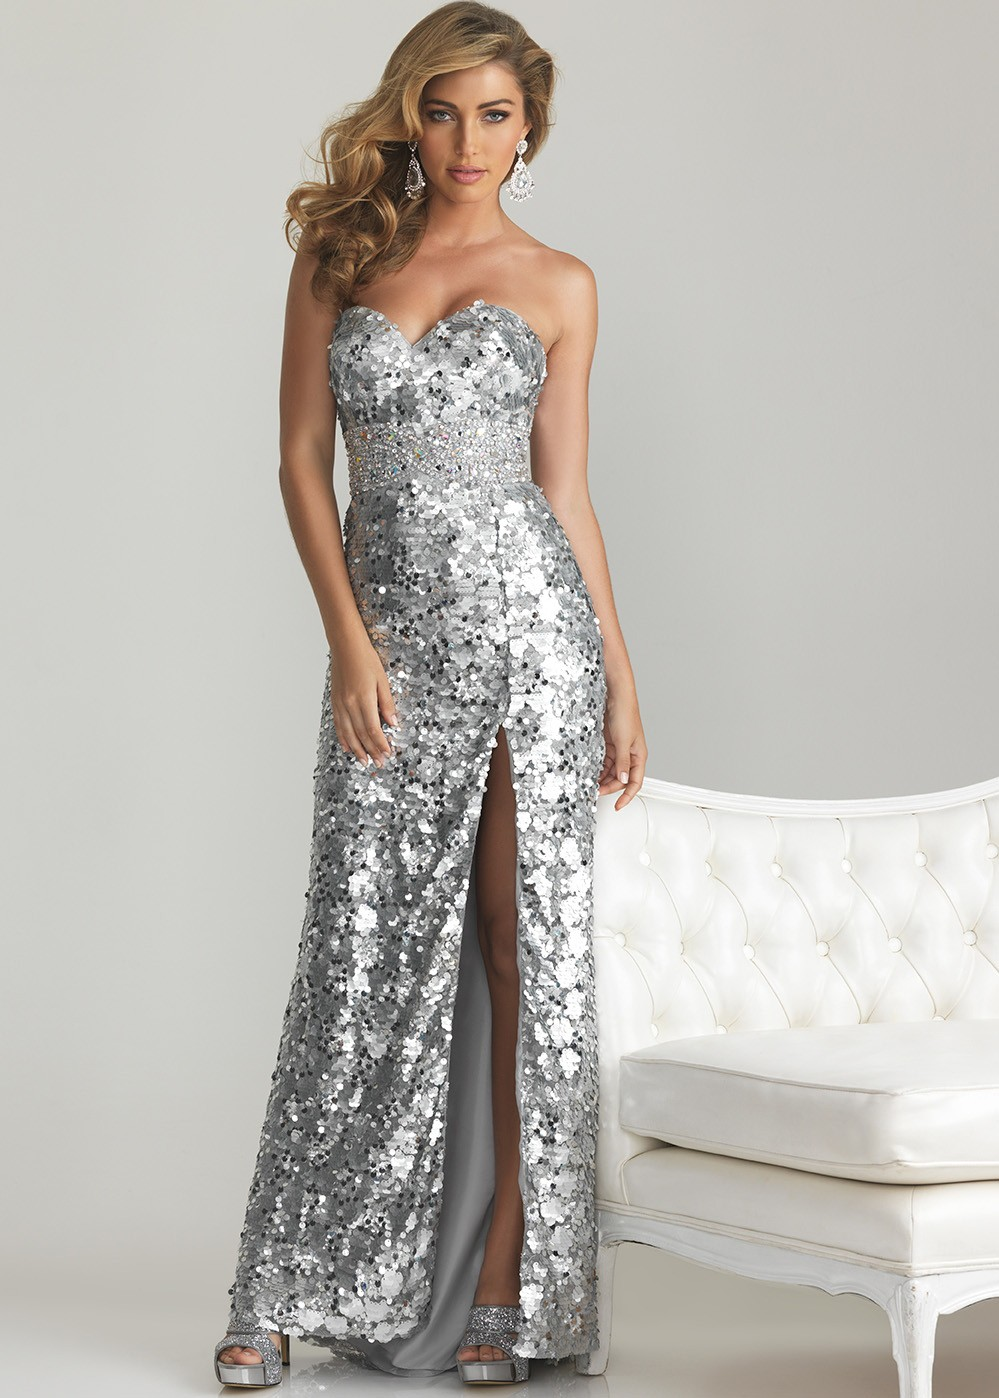 Silver Sparkly Dresses